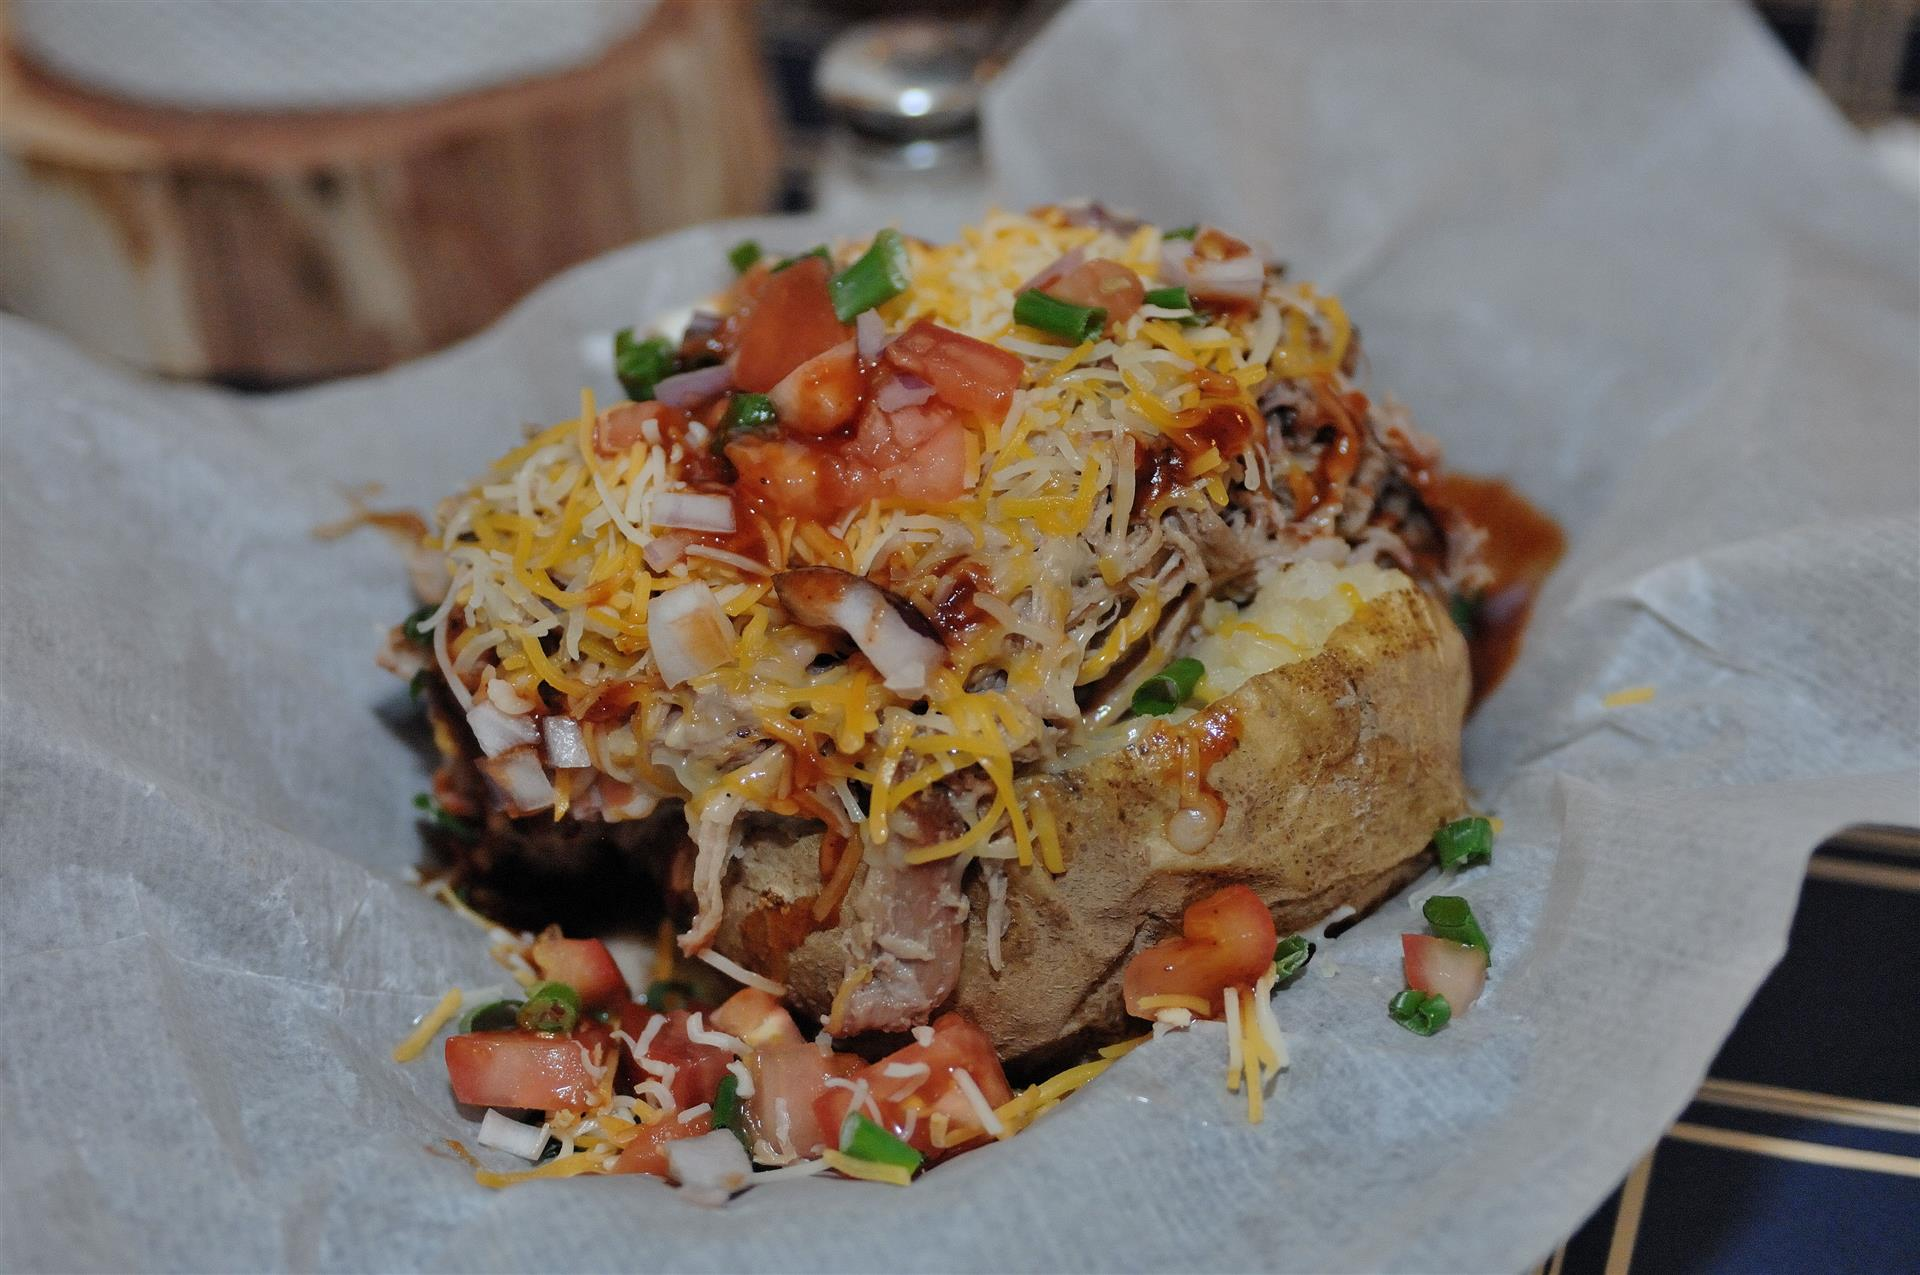 baked potato topped with pulled pork, tomatoes, shredded cheese, onions,  and chives